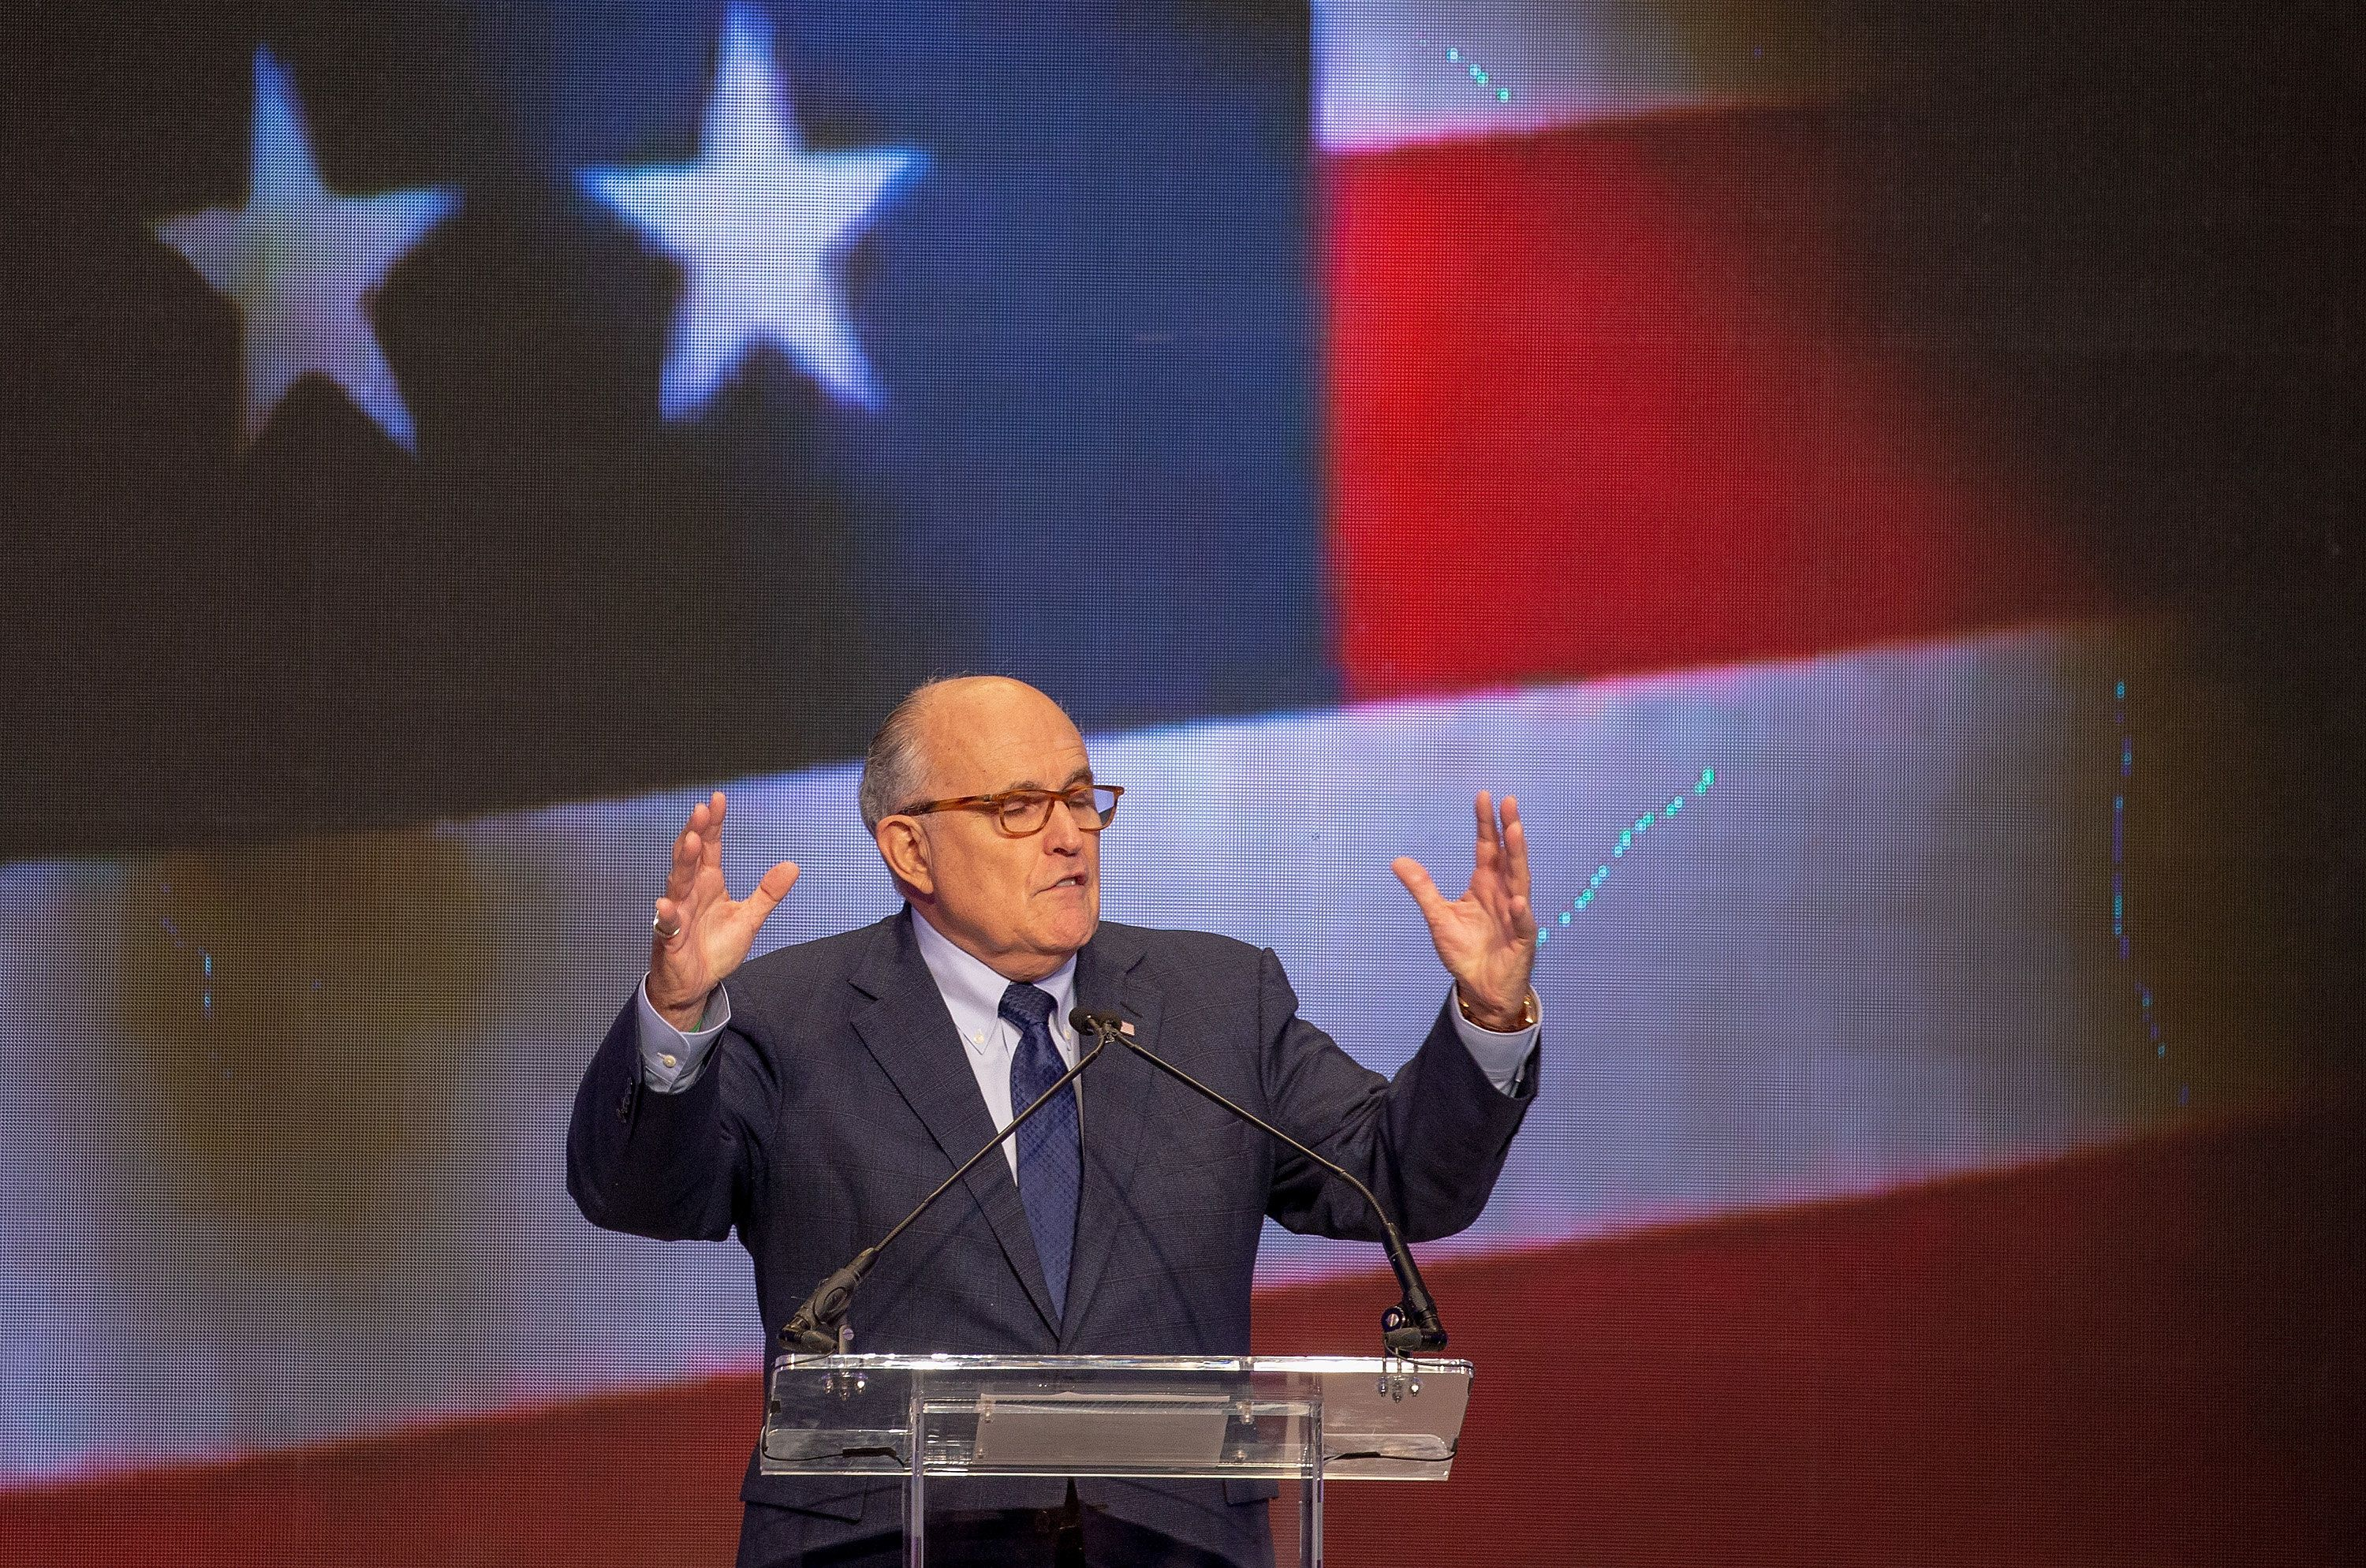 WASHINGTON, DC - MAY 05:  Latest appointee to President Donald Trump's legal team and former Mayor of New York City  Rudy Giuliani speaks at the Conference on Iran on May 5, 2018 in Washington, DC. Over one thousand delegates from representing Iranian communities from forty states attends the Iran Freedom Convention for Human Rights and Democracy.  (Photo by Tasos Katopodis/Getty Images)